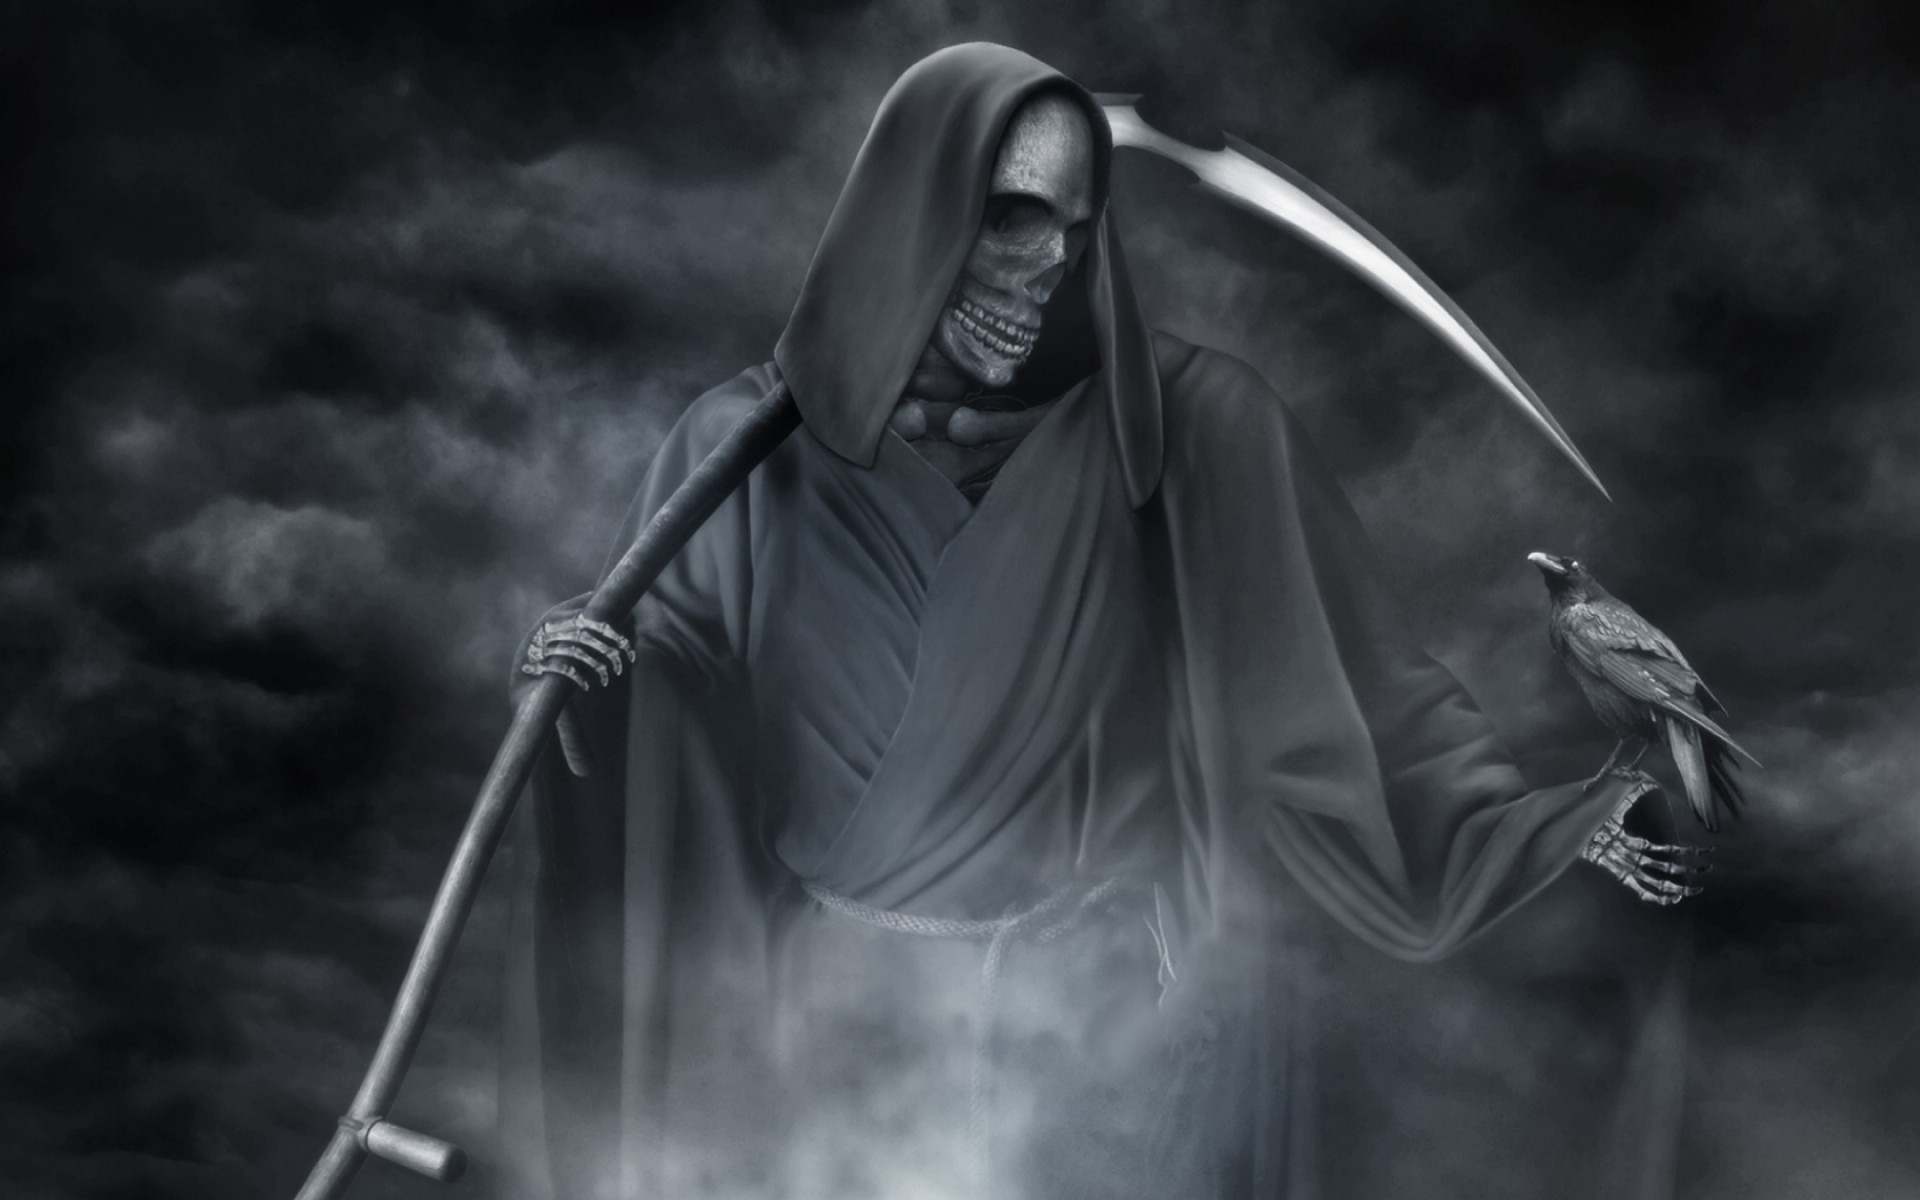 the_grim_reaper__wallpaper_1920x1200